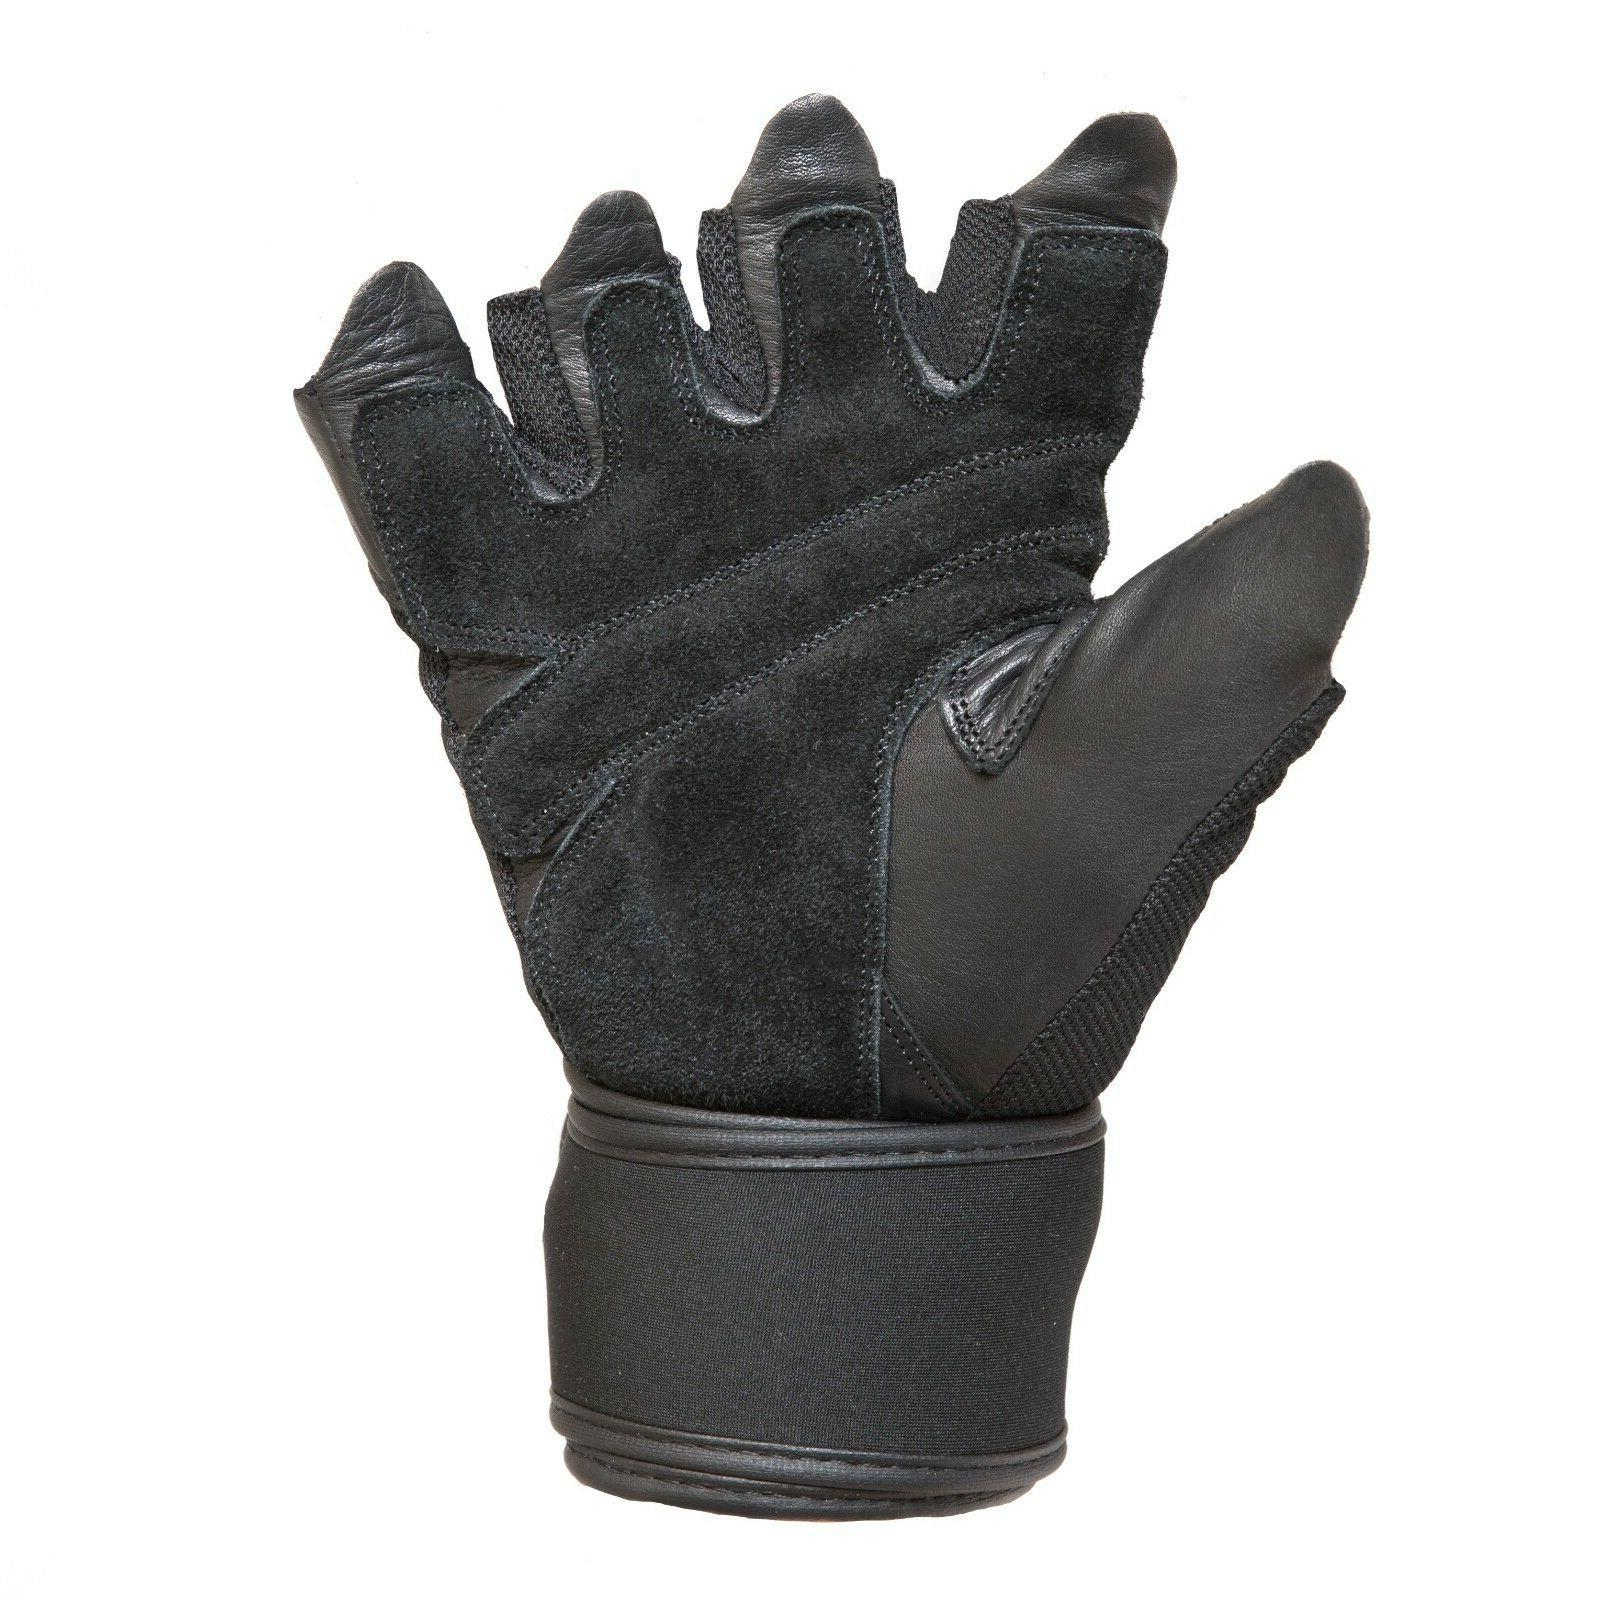 Contraband Mens Stretch Fit Wrap Gloves w/ Leather Palm